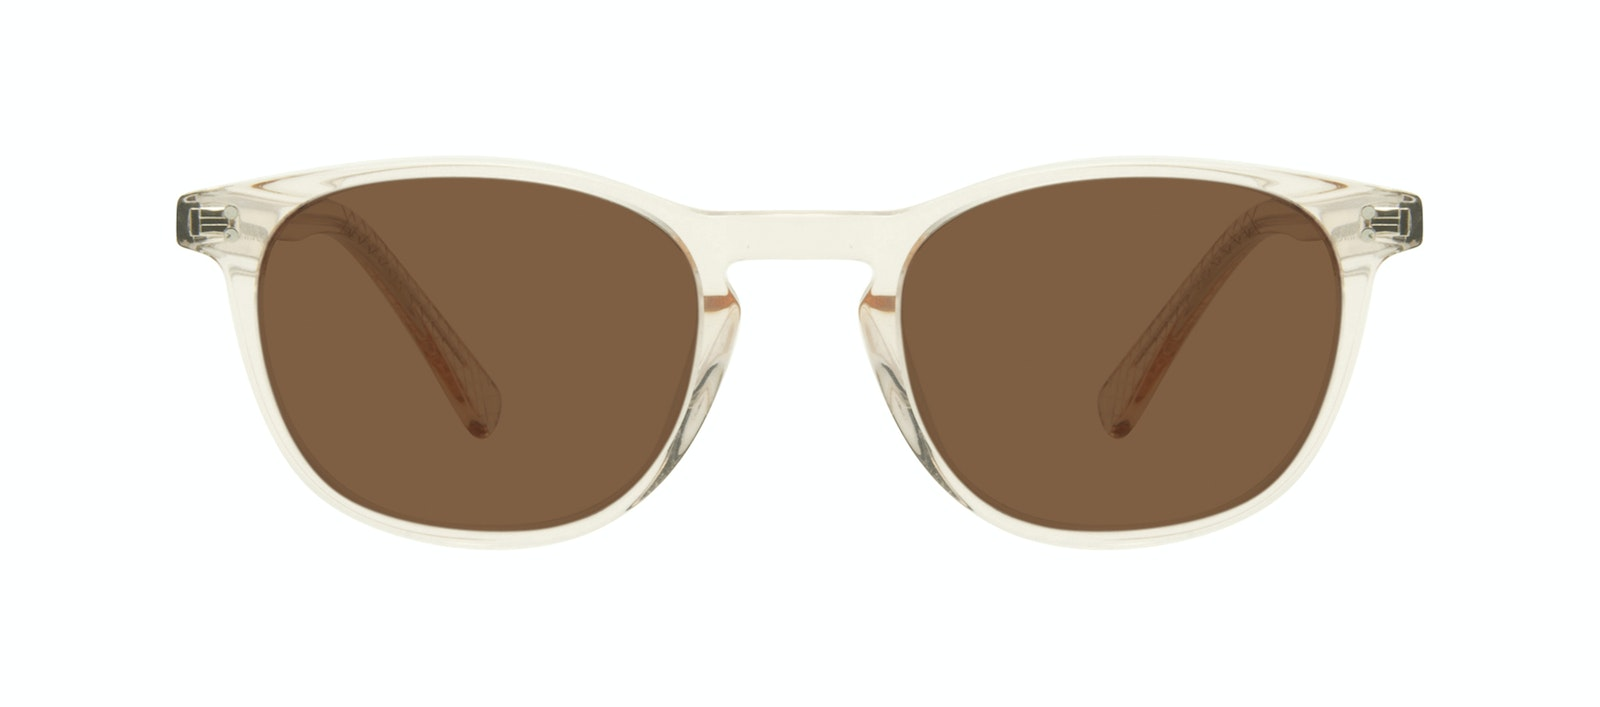 Affordable Fashion Glasses Round Sunglasses Men Trooper Golden Front